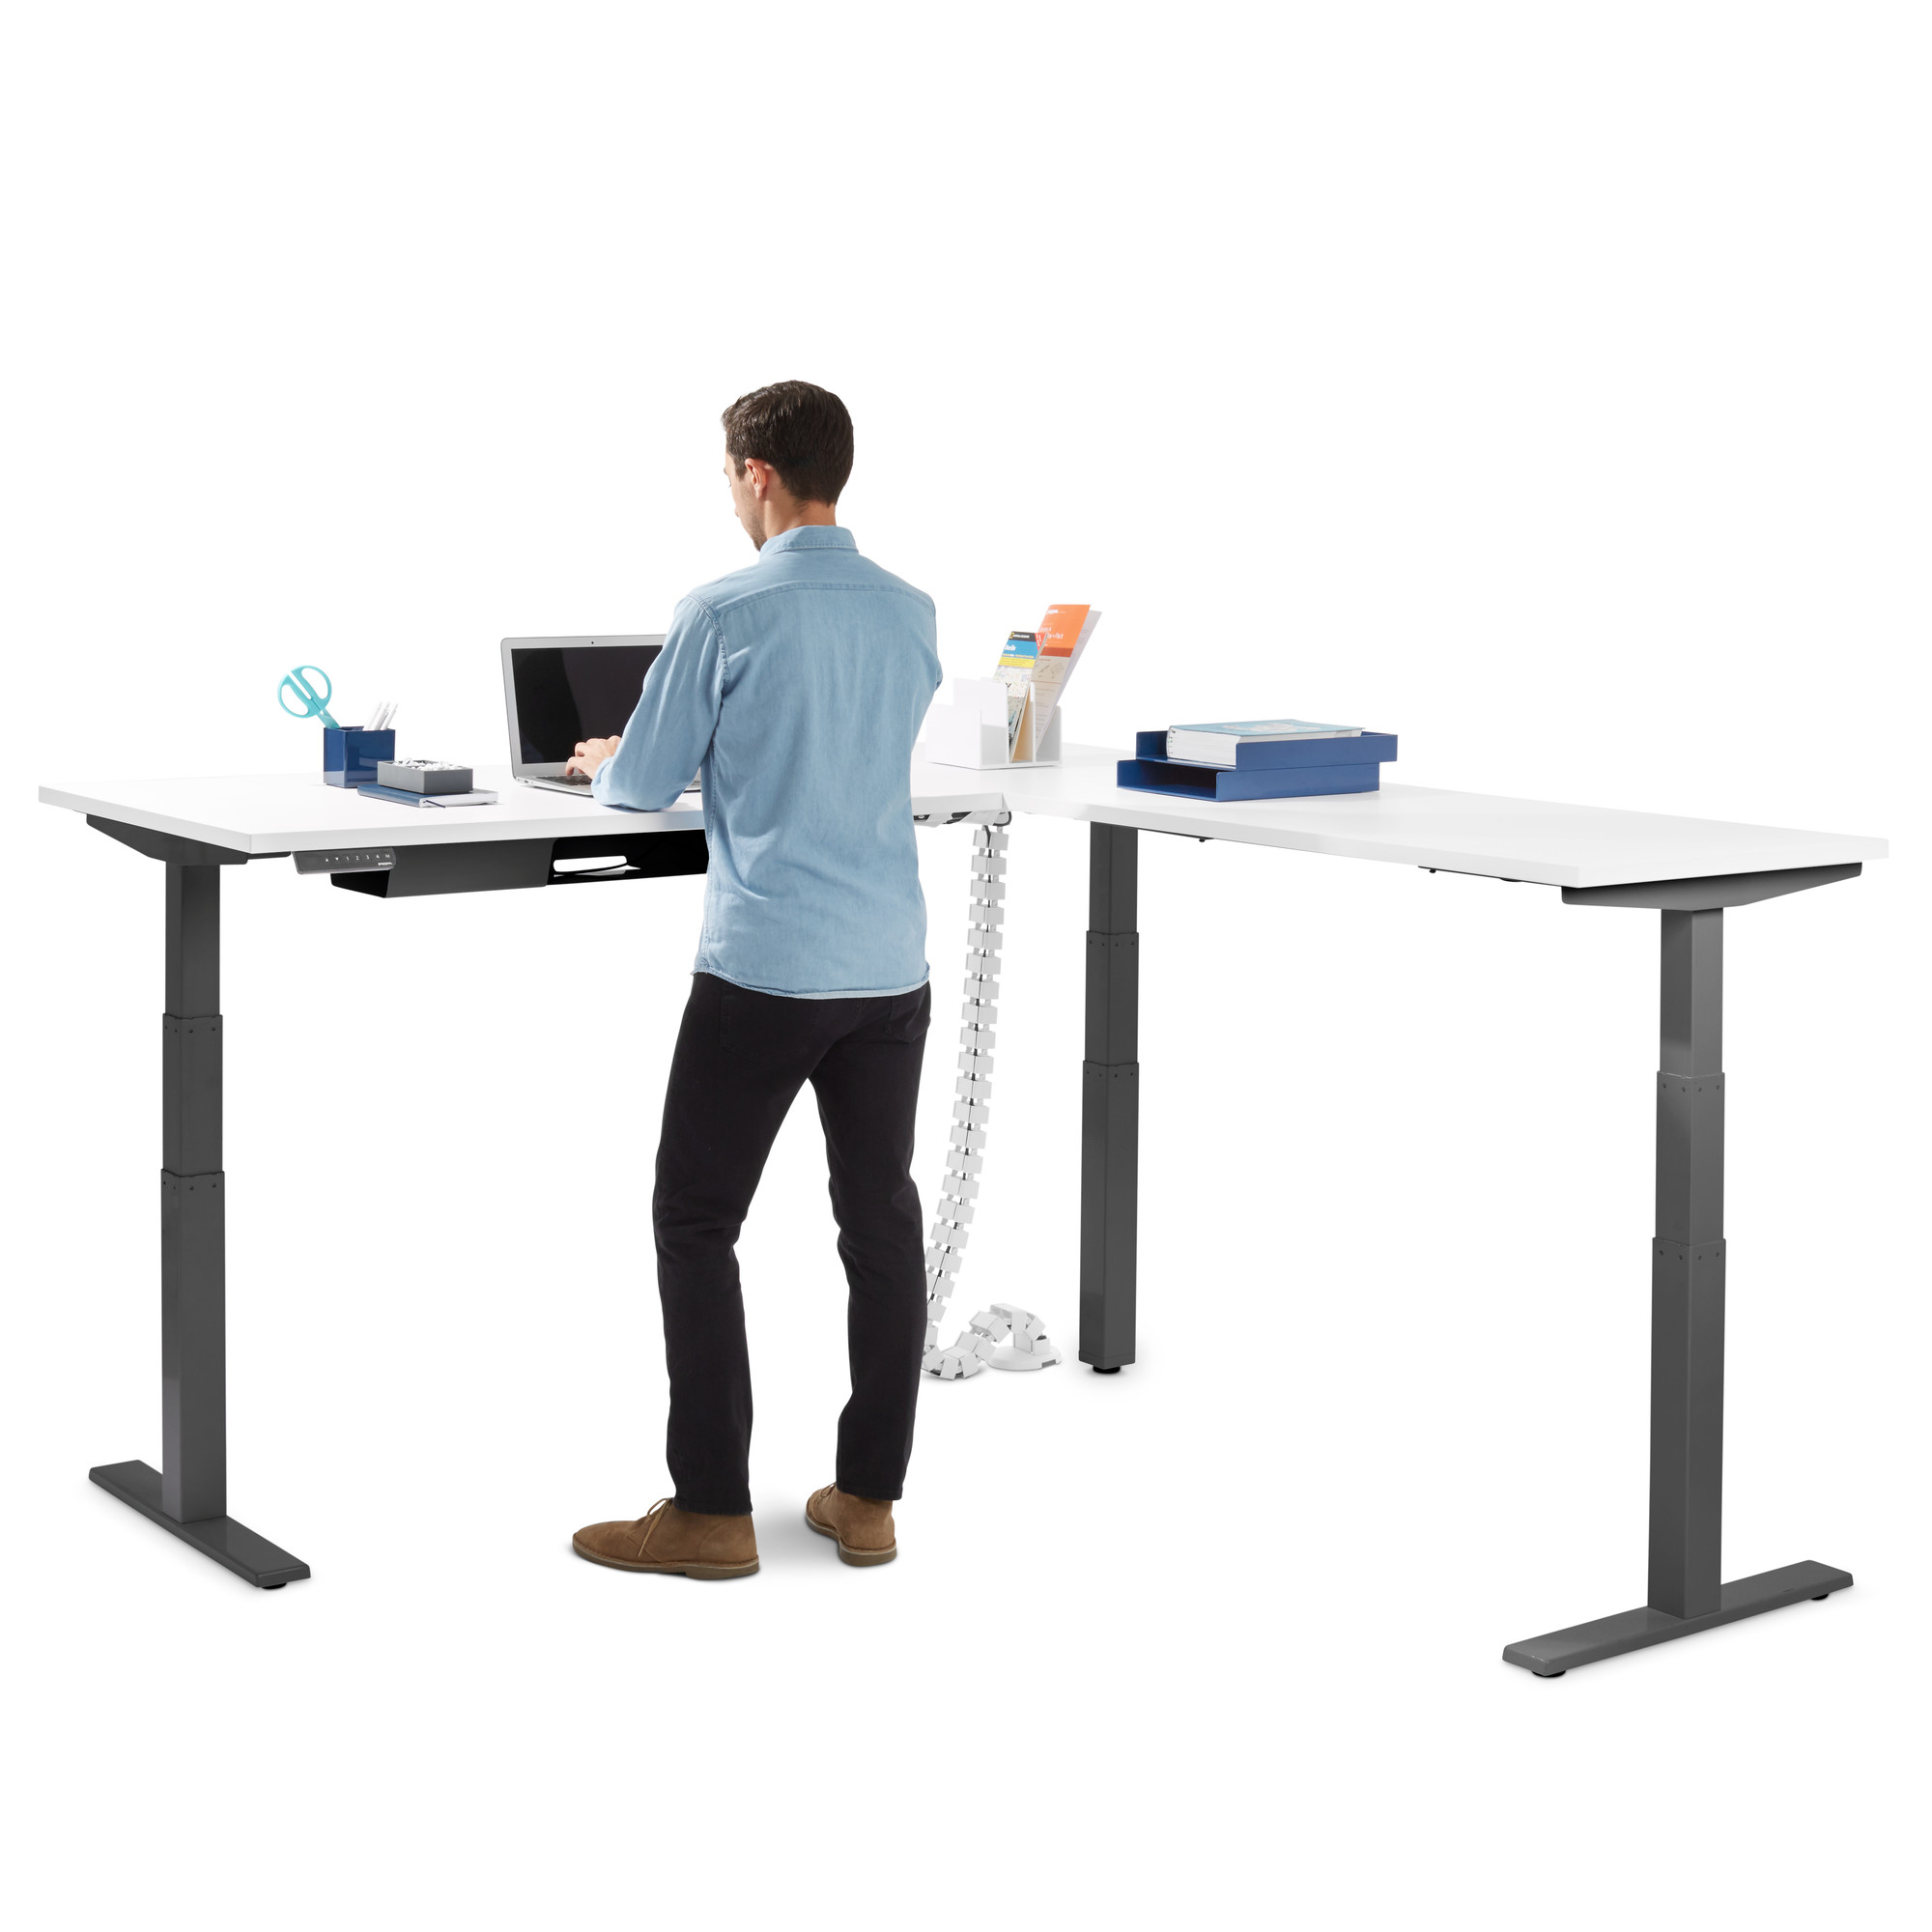 manual only kitchen workstation height top down desk table not adjustable com sit dp legs standing included up amazon stand base silver frame